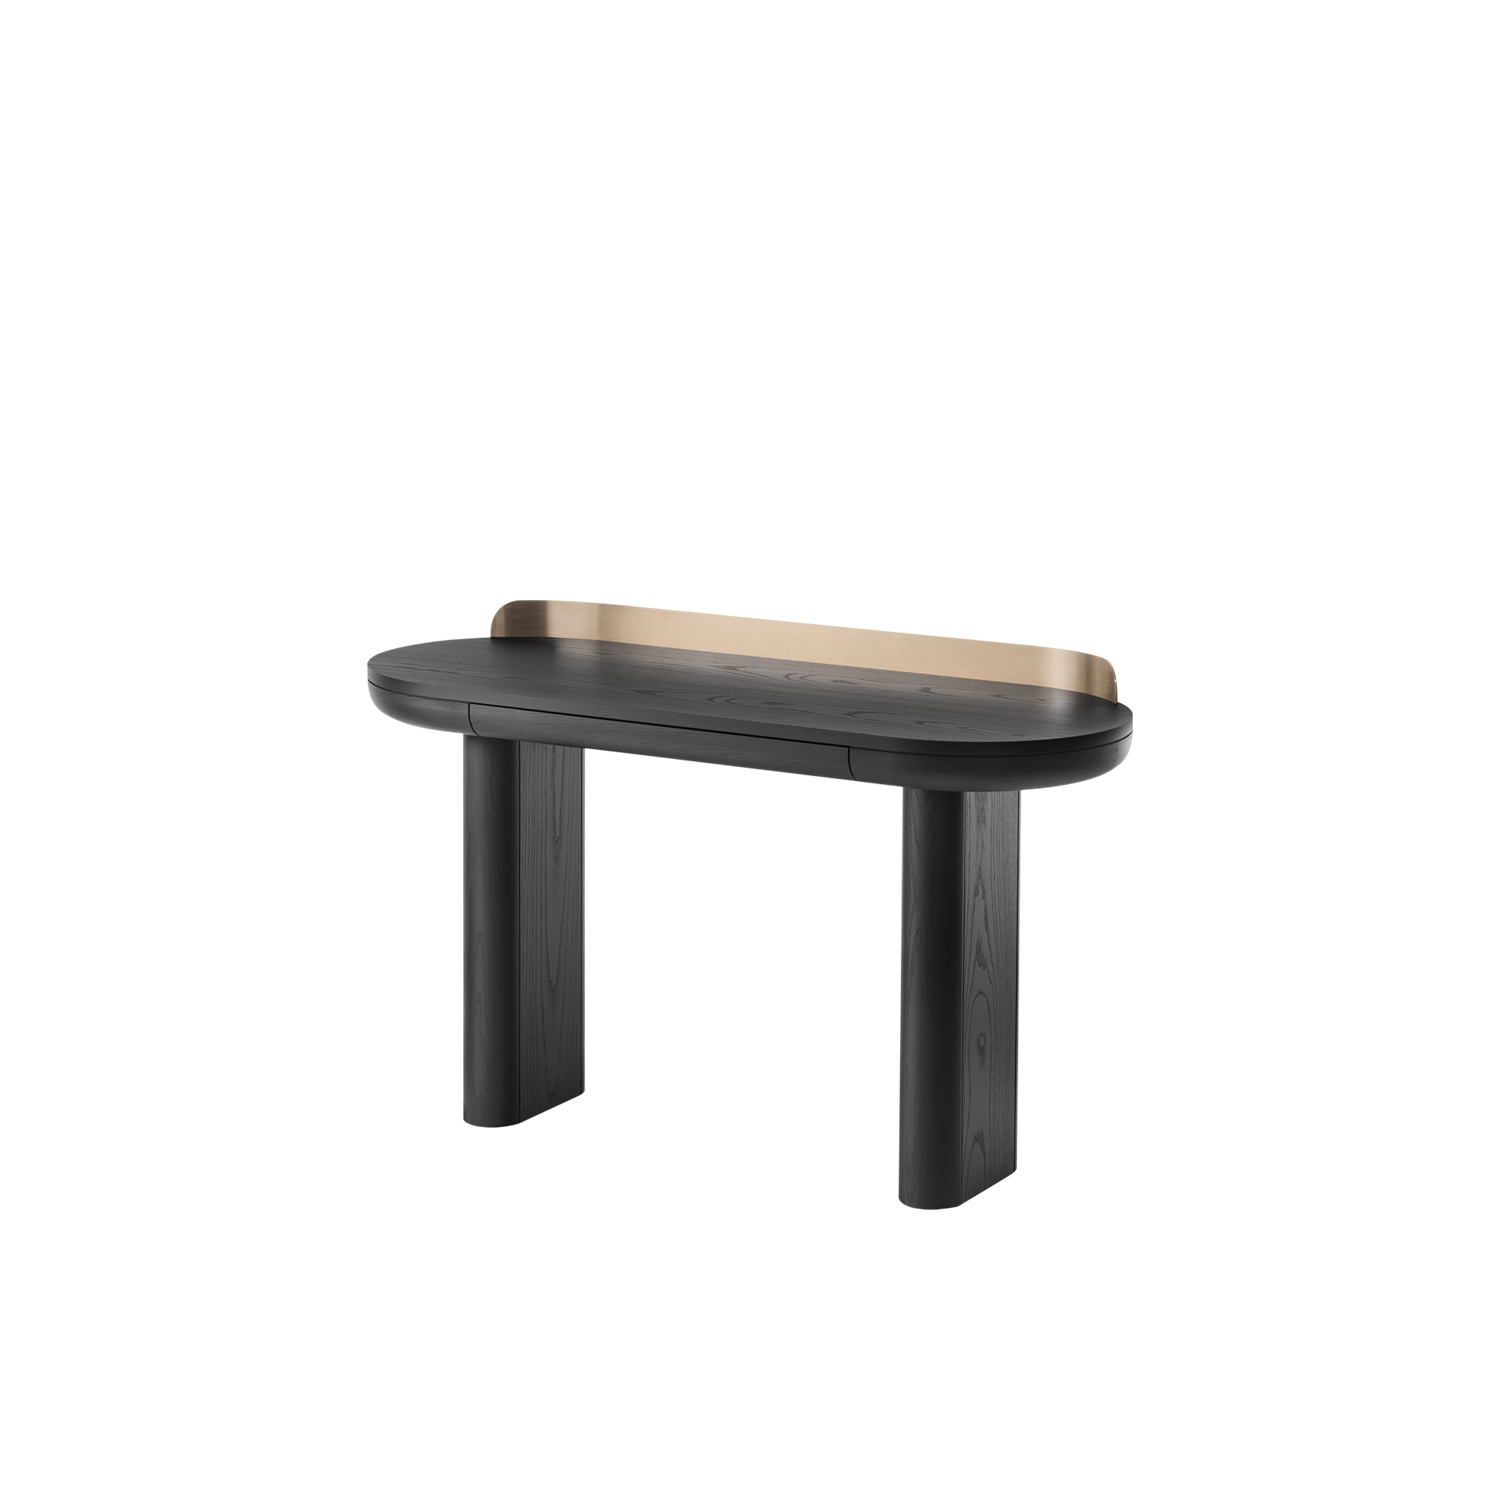 Jumbo Desk - Jumbo is a solid looking writing desk designed to meet the challenges of the home office or limited space of bedrooms. A band of metal embraces the top, embellishing its volume. Jumbo also features a small drawer to please treasure hoarders.  | Matter of Stuff